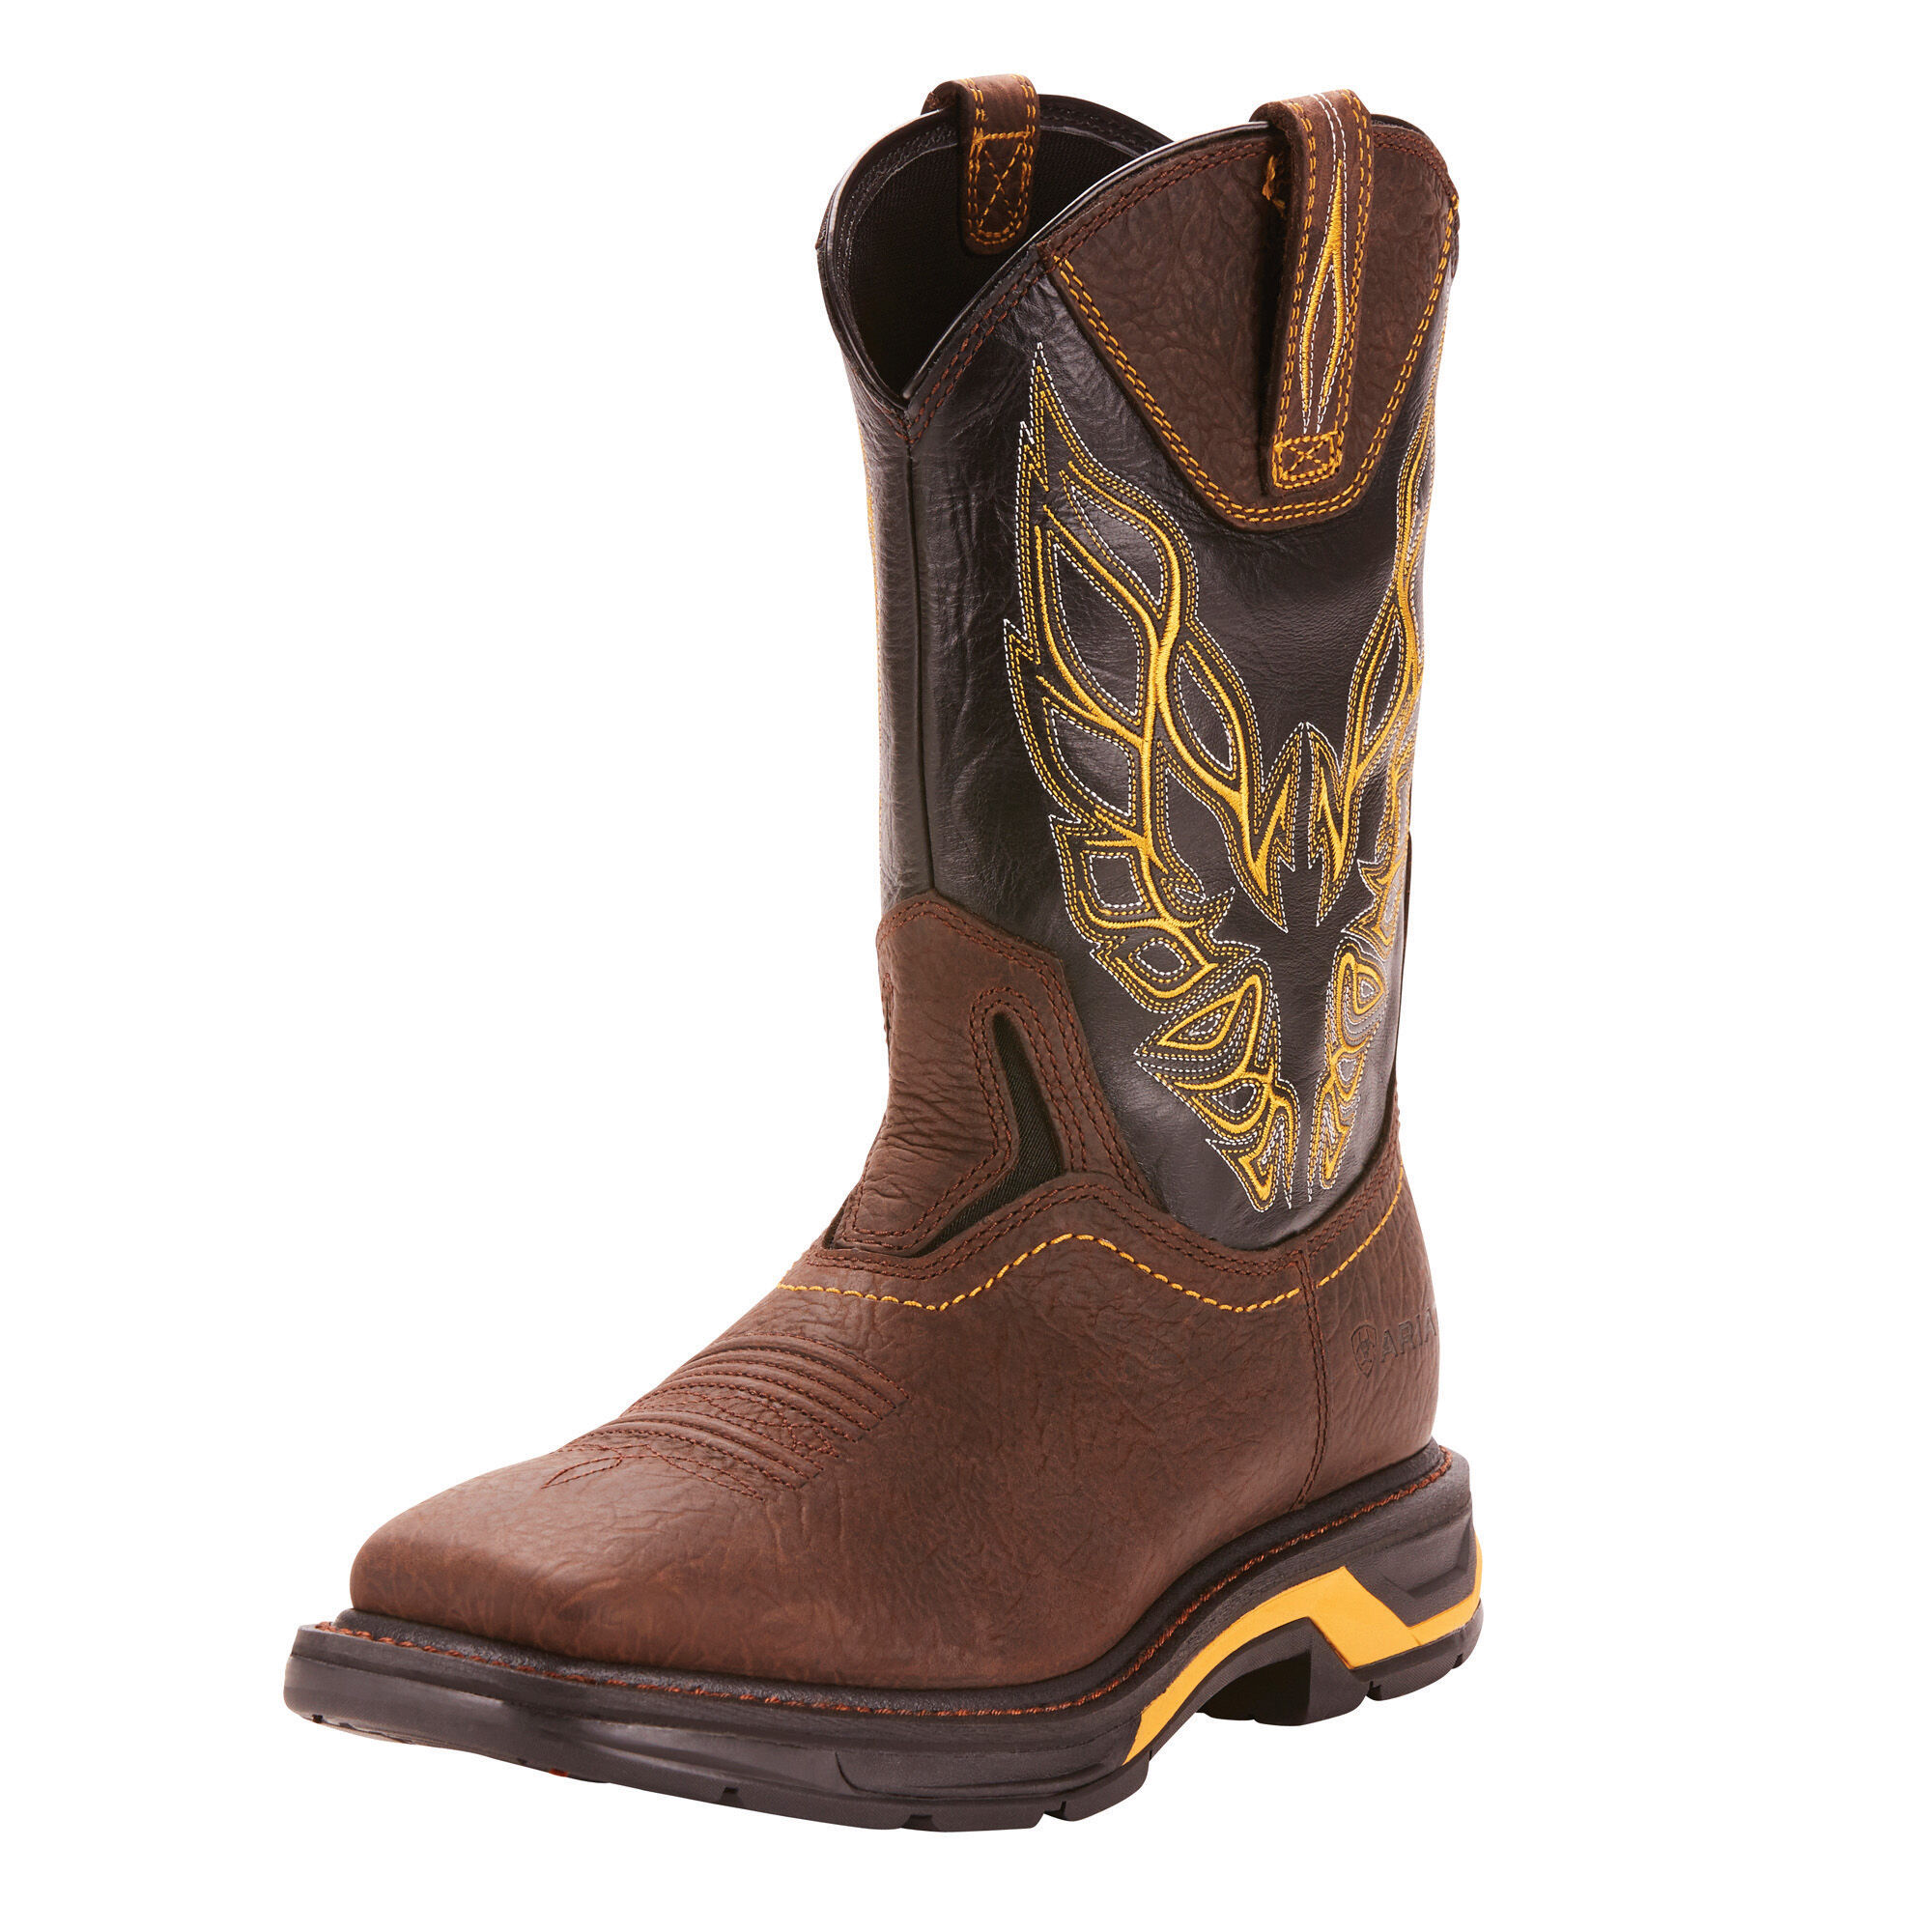 WorkHog XT Firebird Work Boot